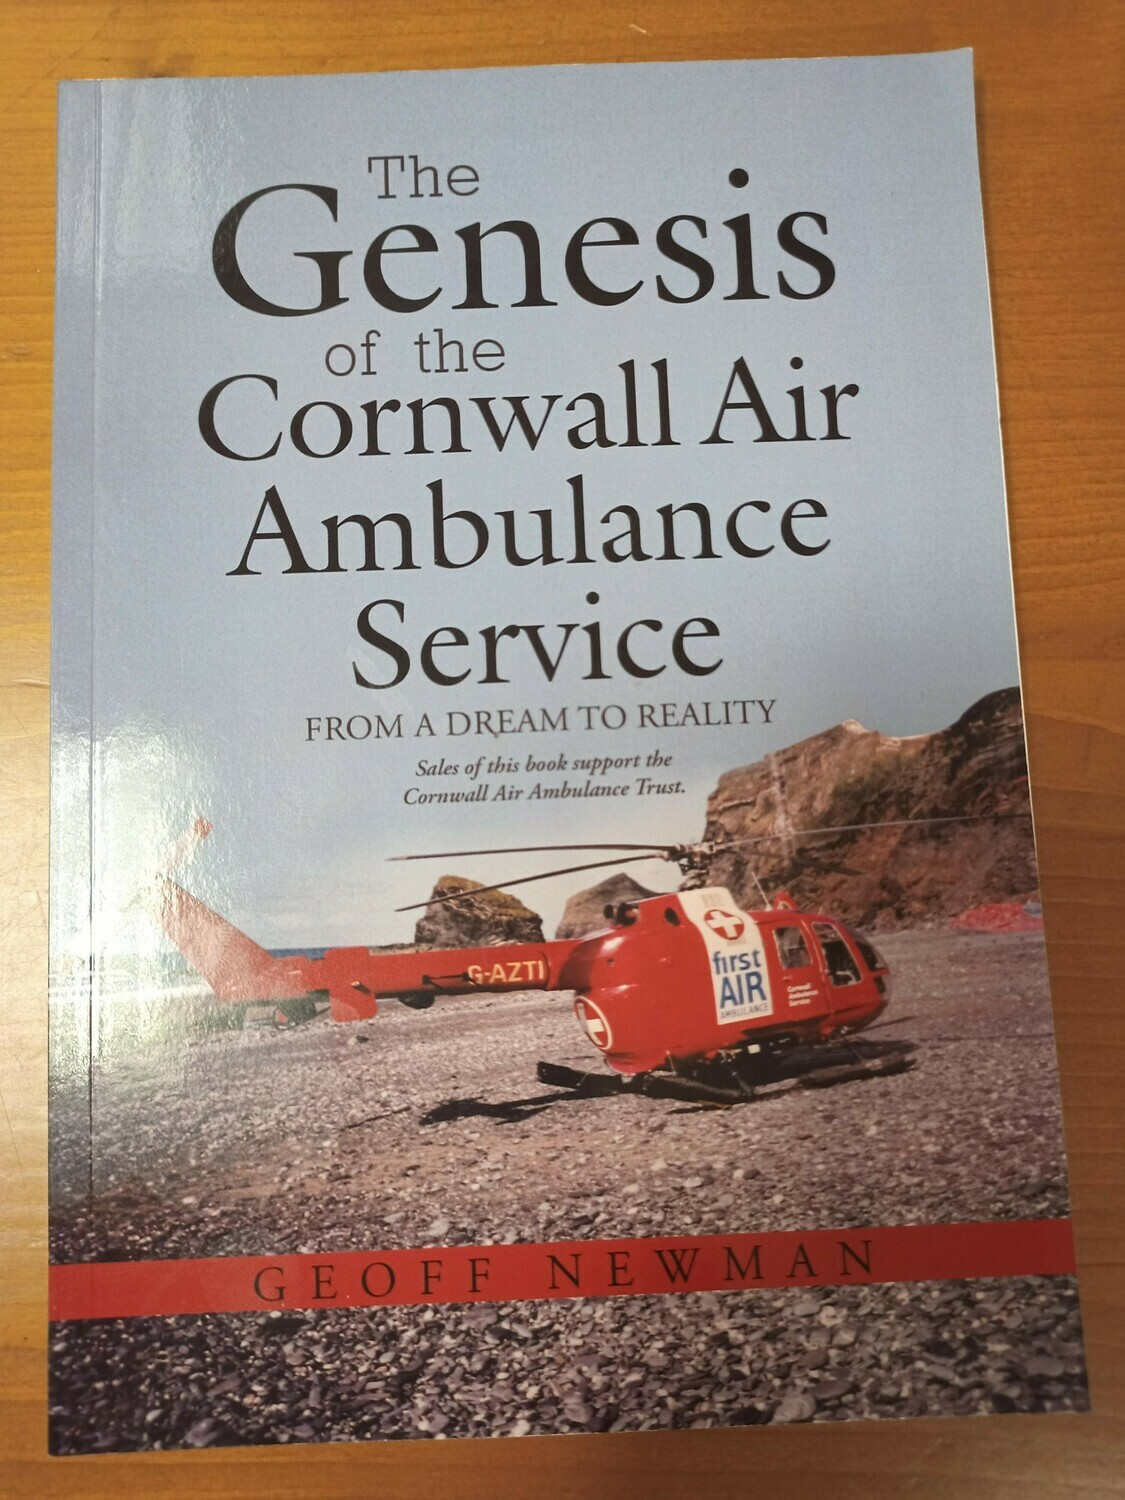 The Genesis of the Cornwall Air Ambulance Service